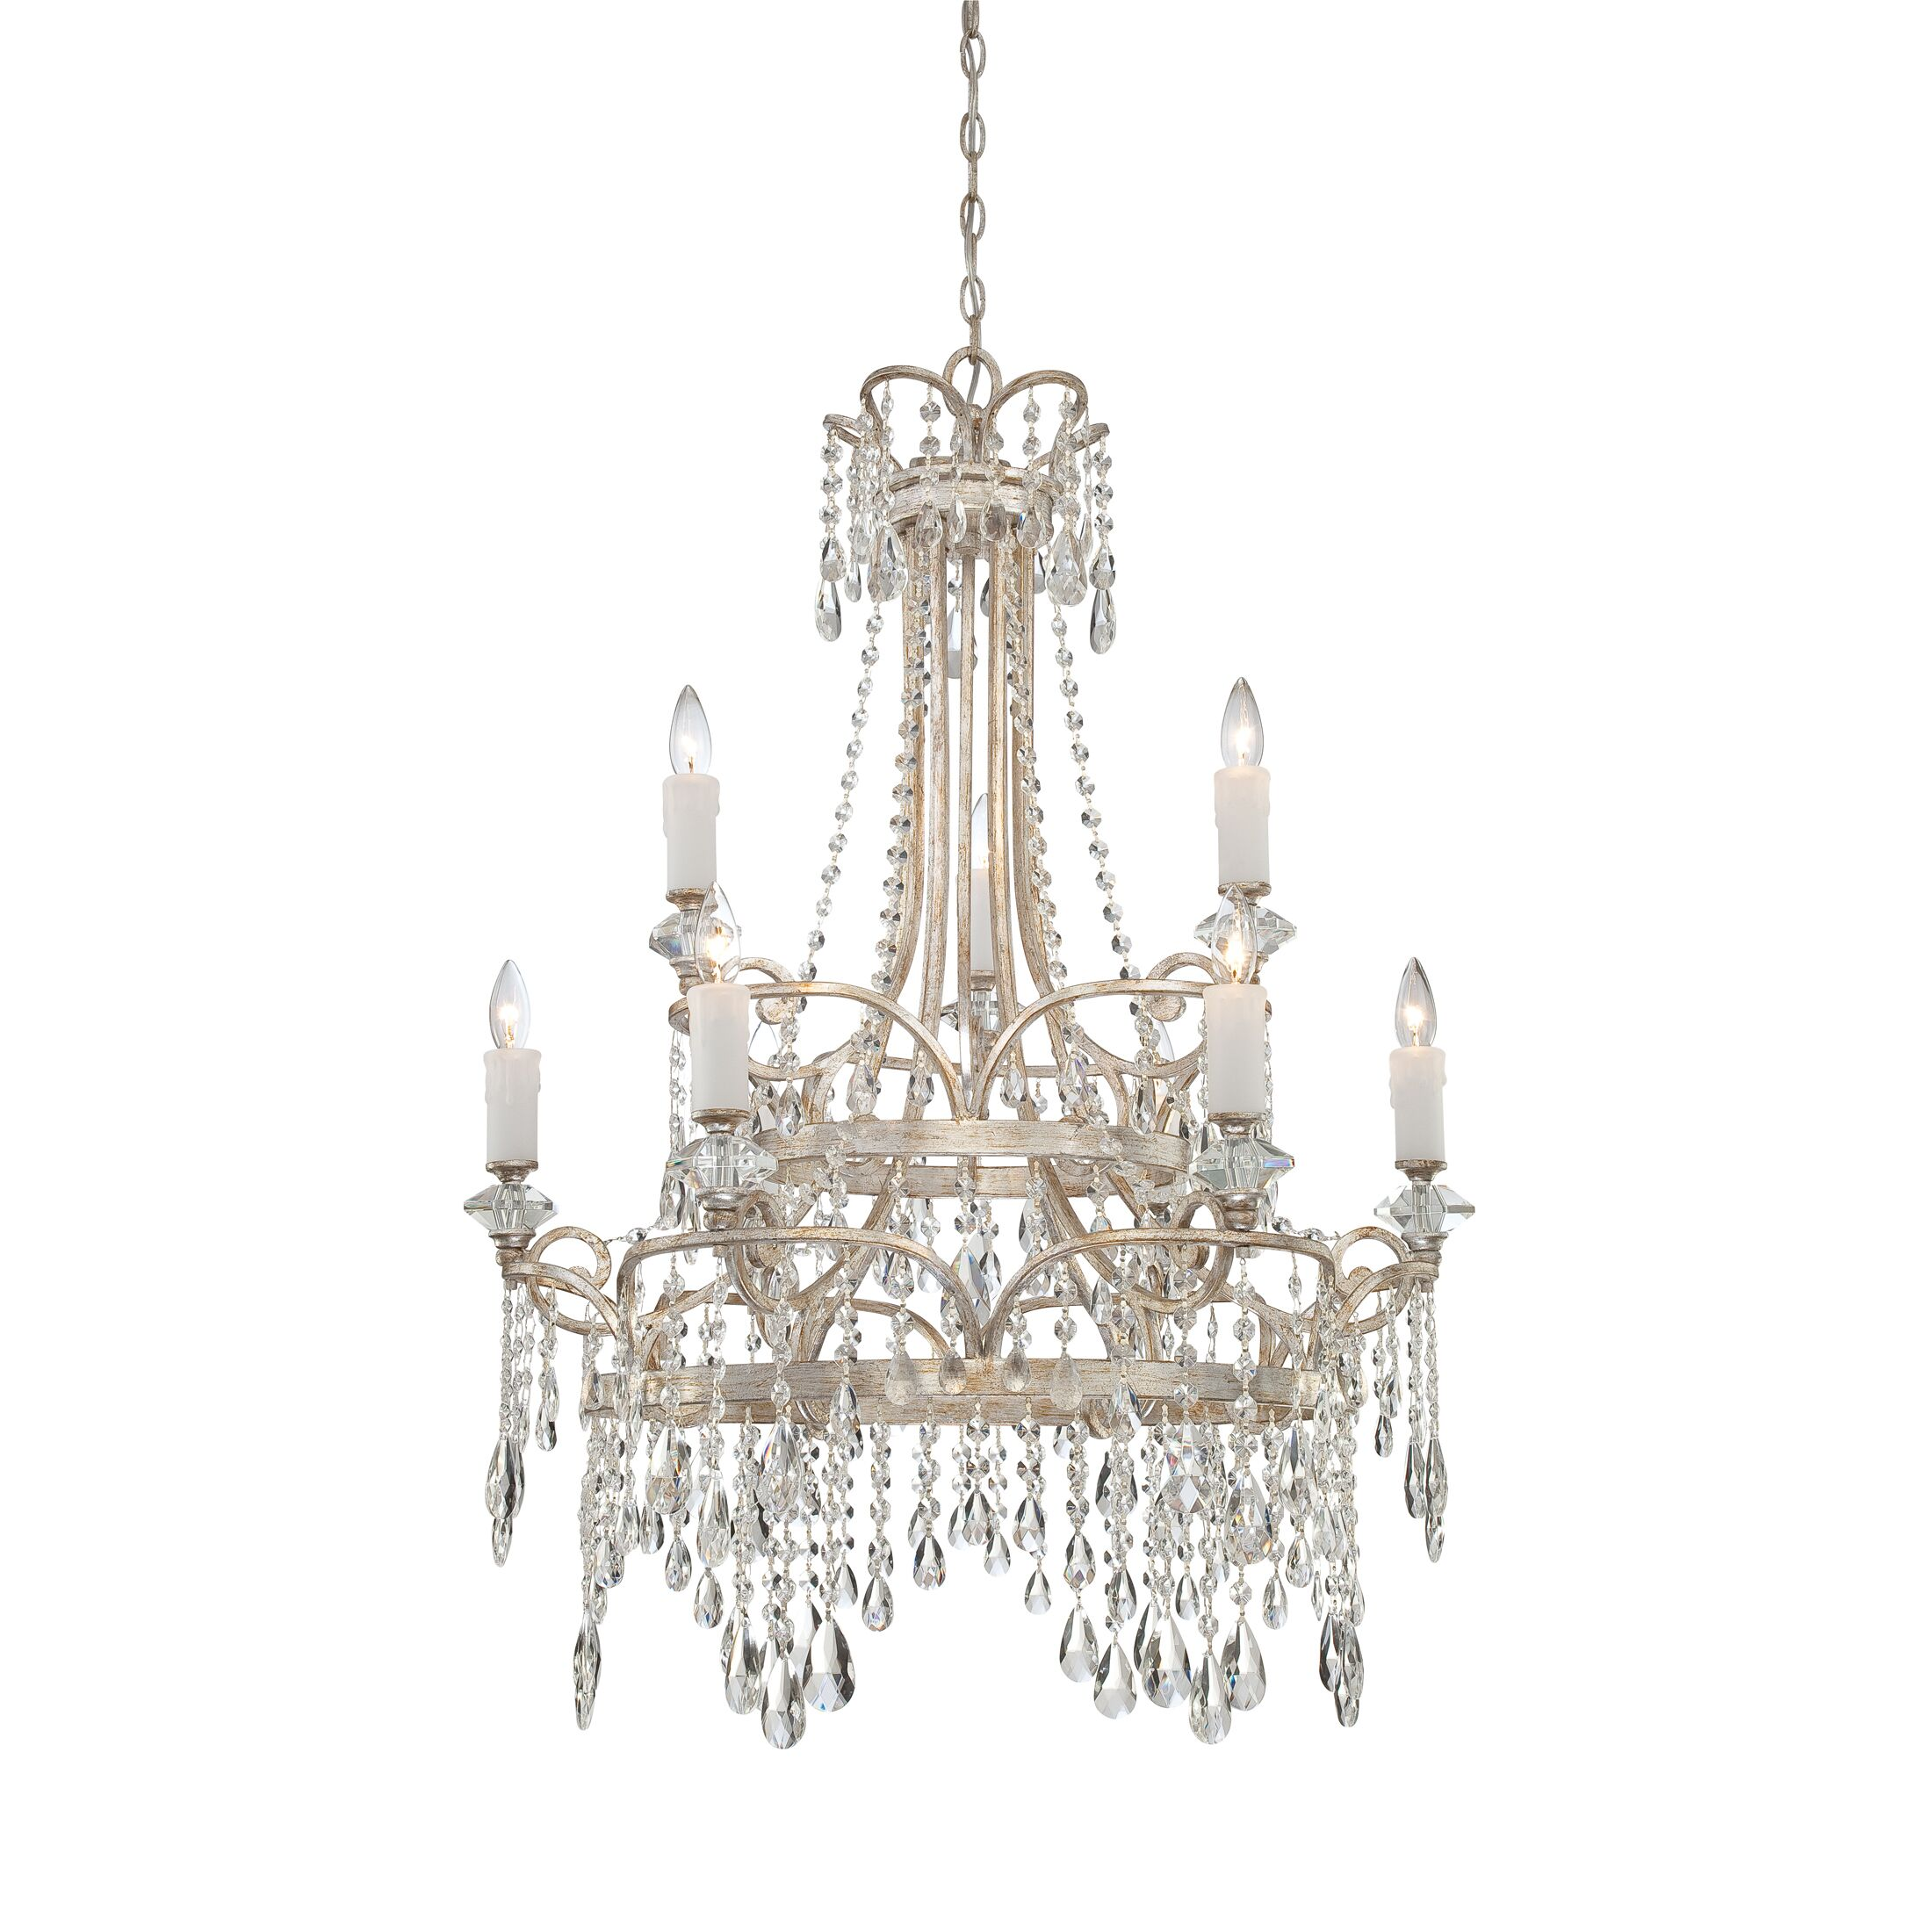 Spade 9-Light Candle Style Chandelier